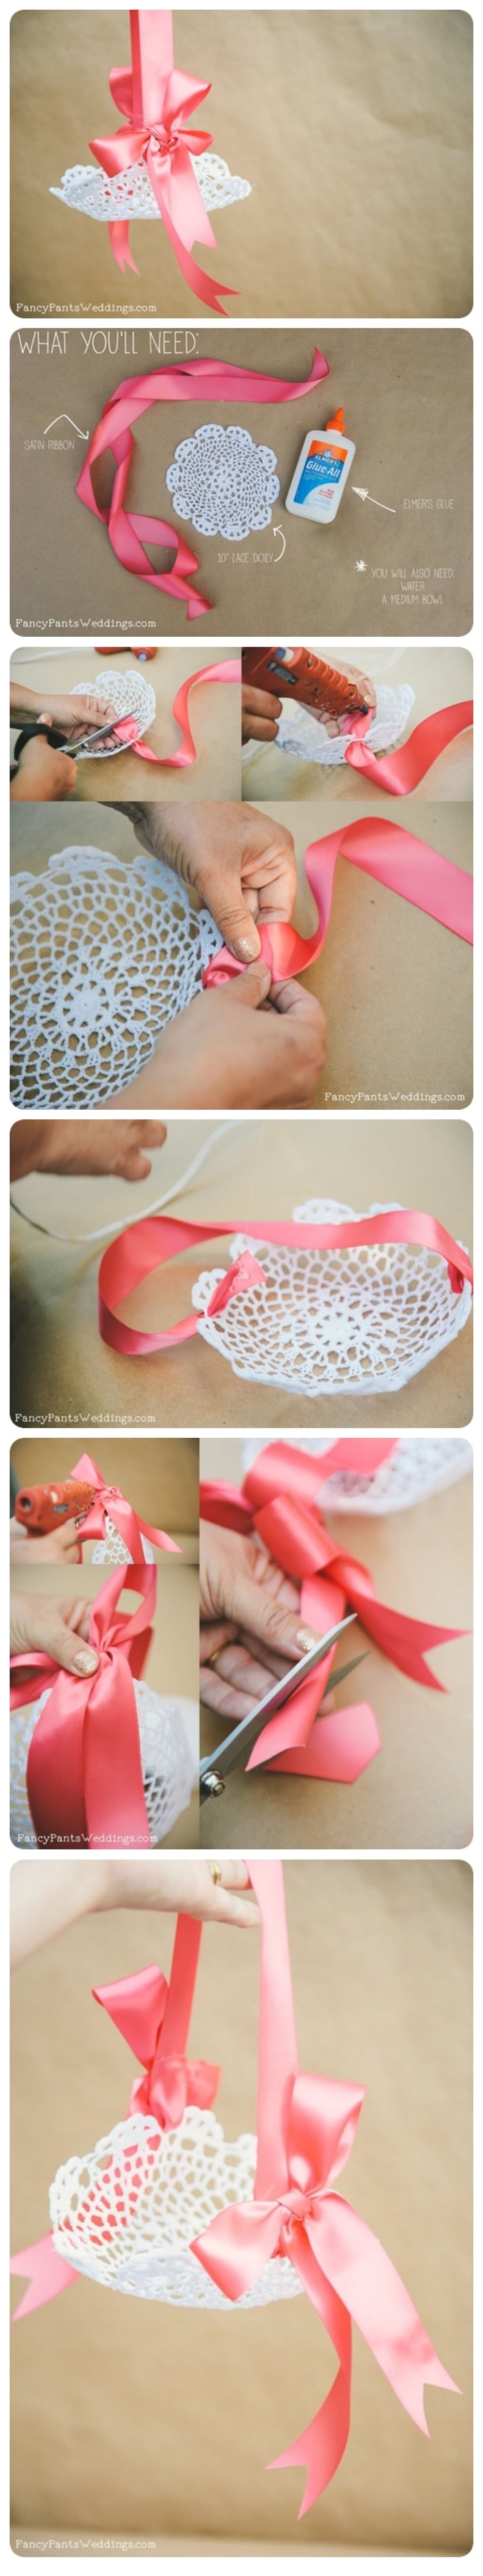 Flower Girl Baskets Diy Pinterest : Lace flower girl petal basket diy pictures photos and